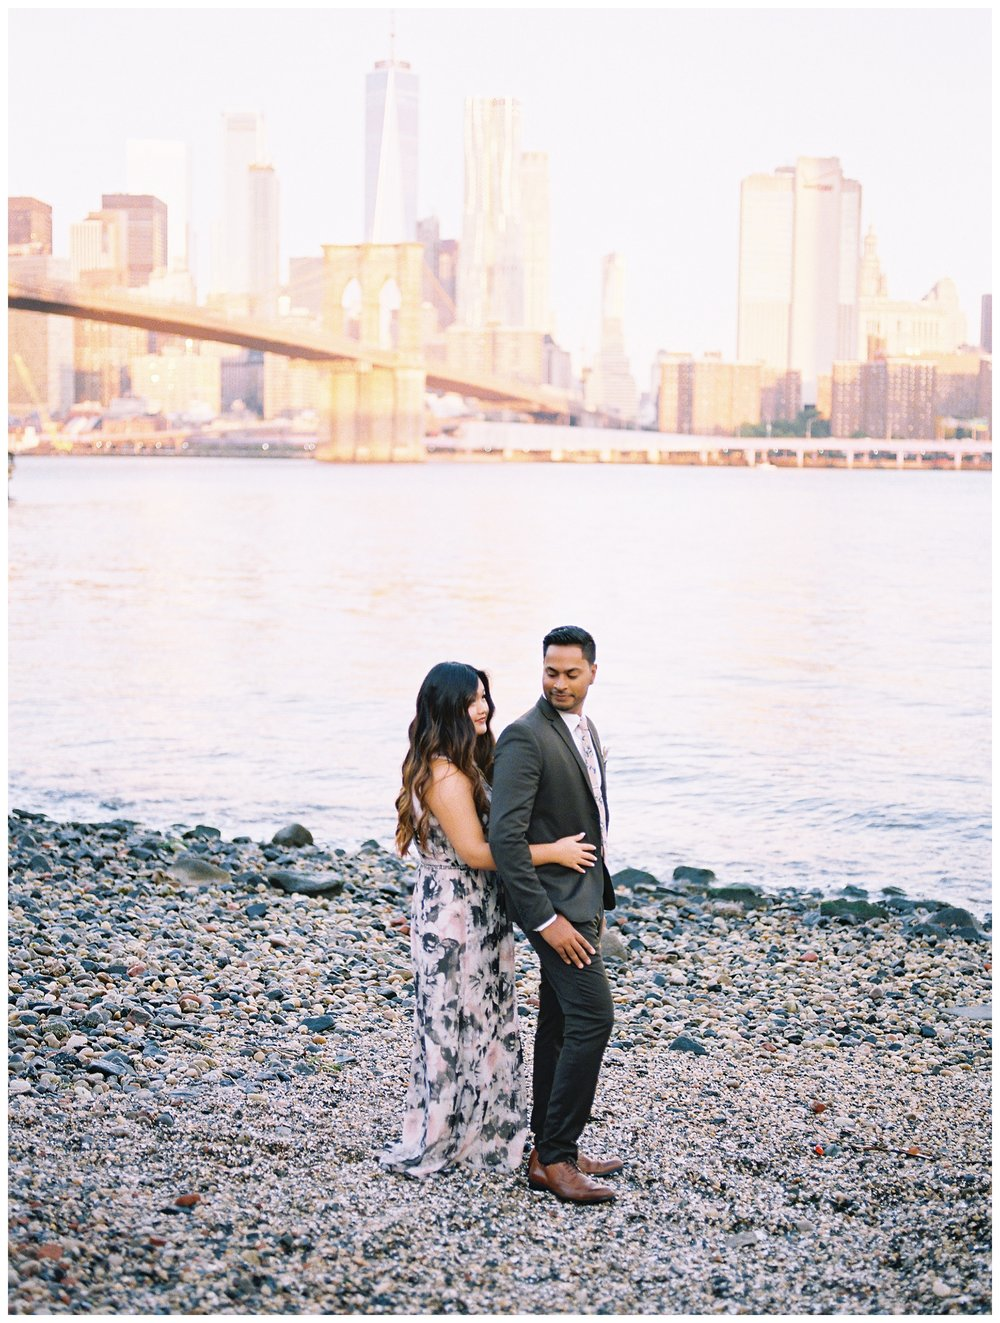 NYC Engagement Photos Kir Tuben_0002.jpg